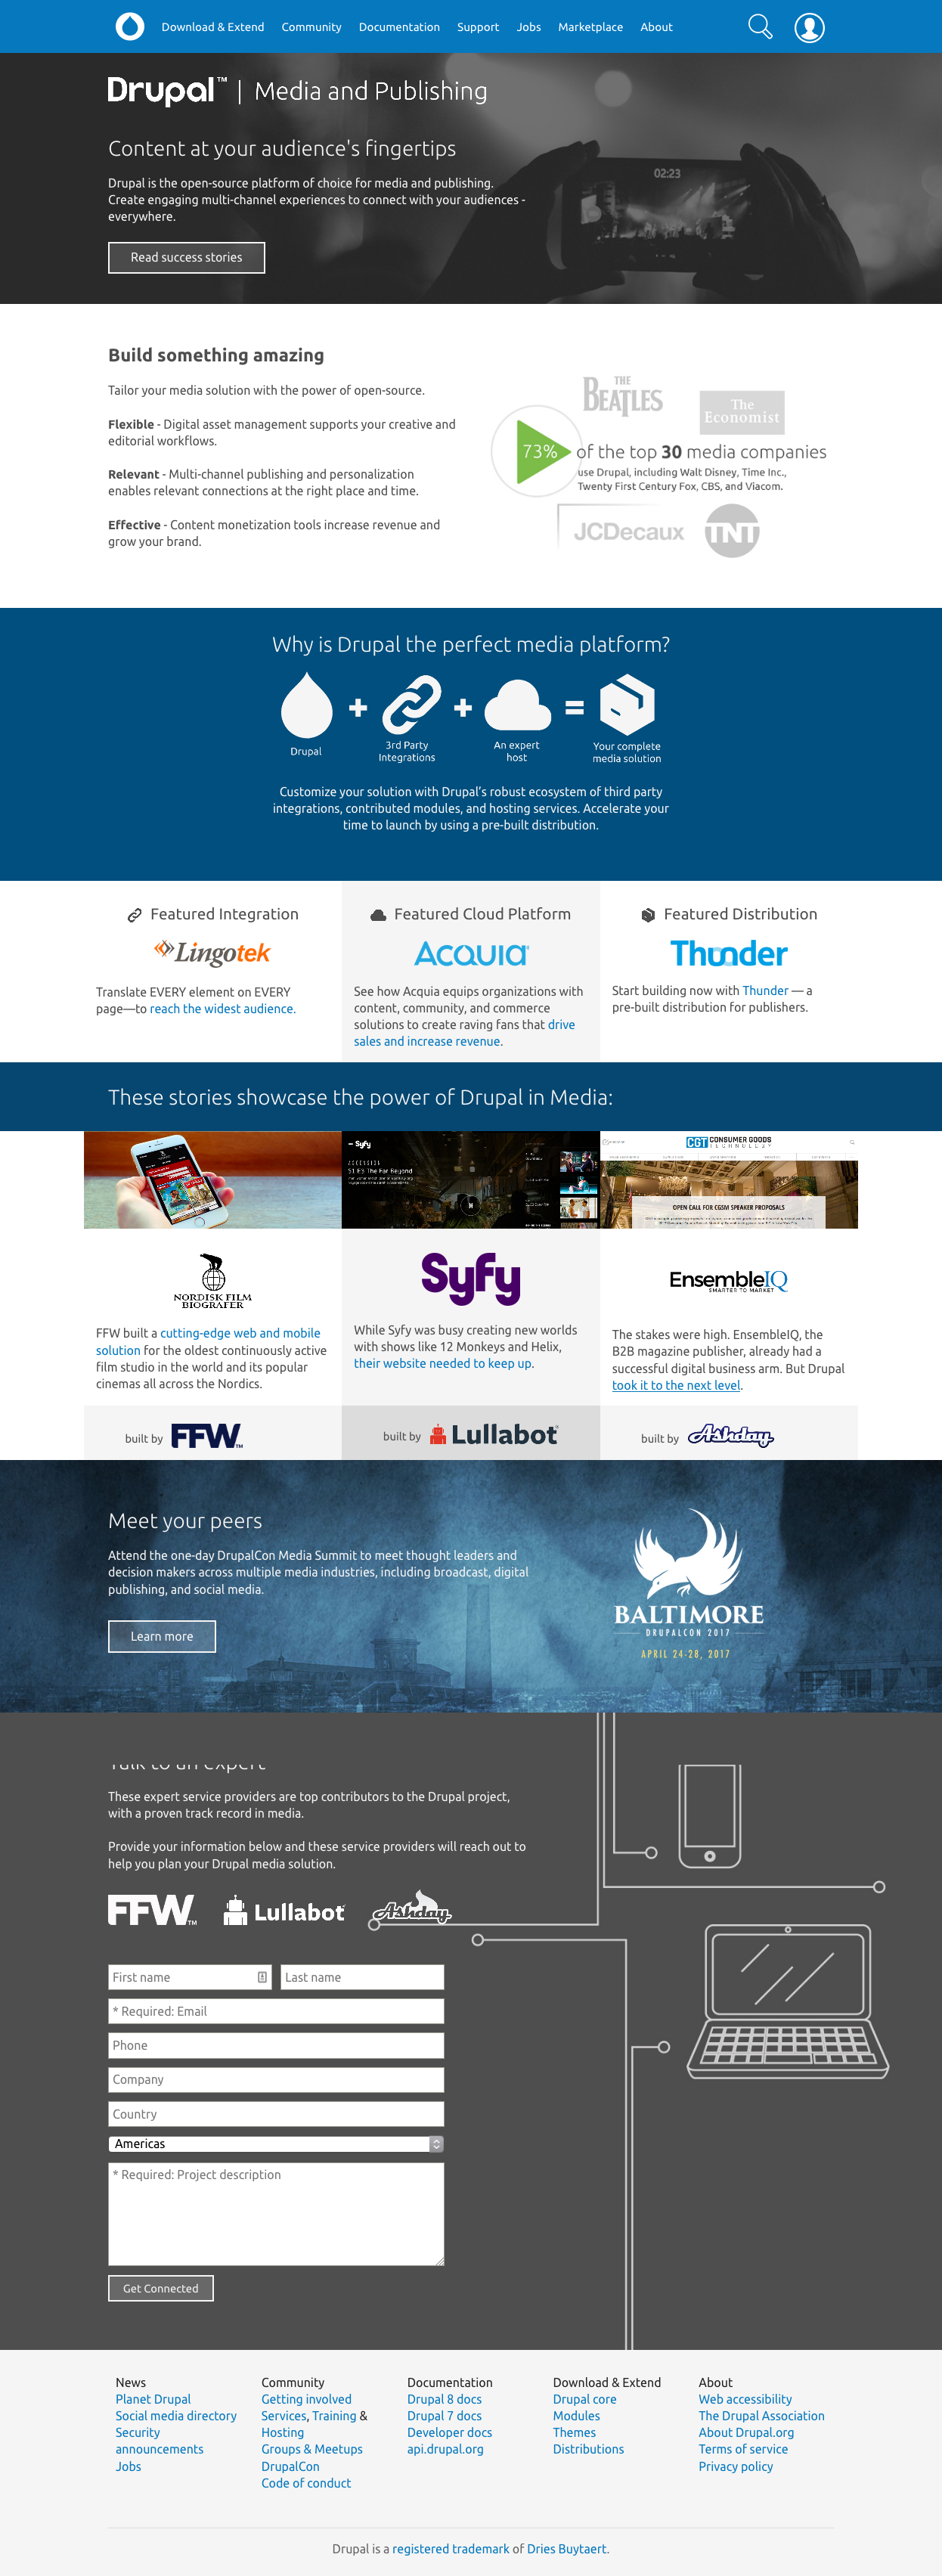 Drupal.org Industry Pages Are Live!